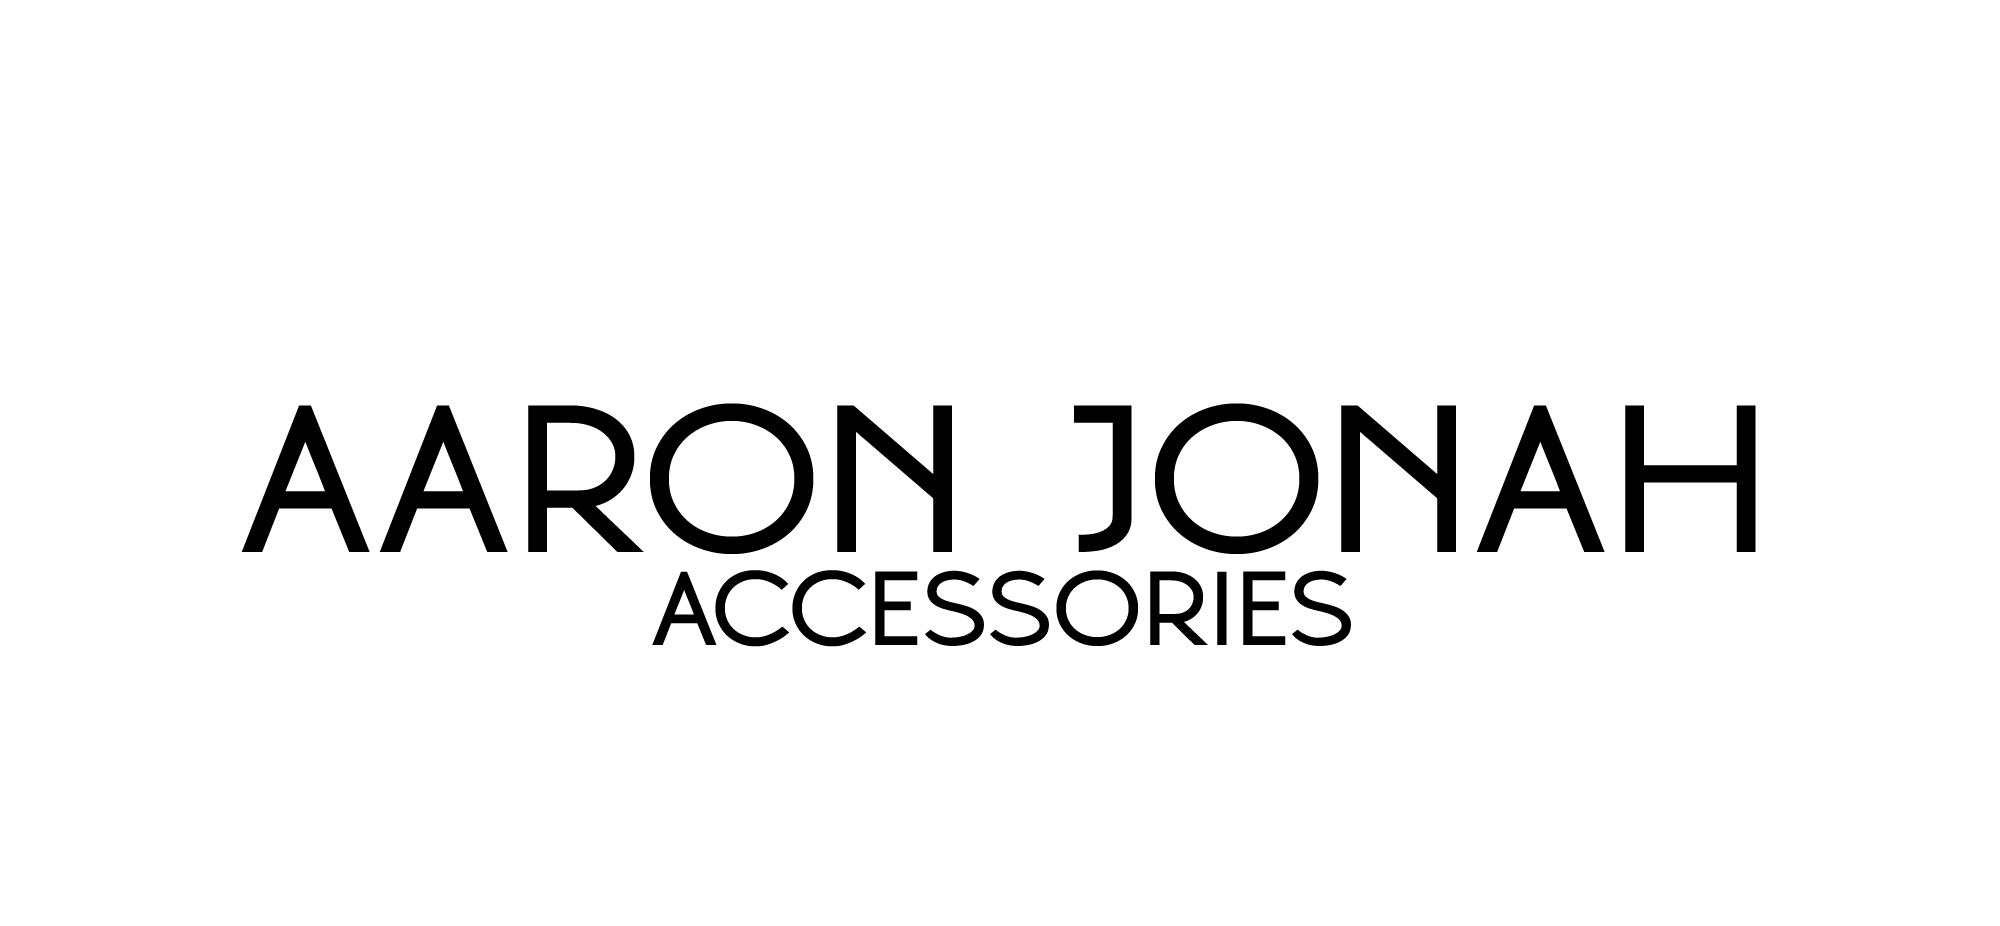 Aaron Jonah Accessories